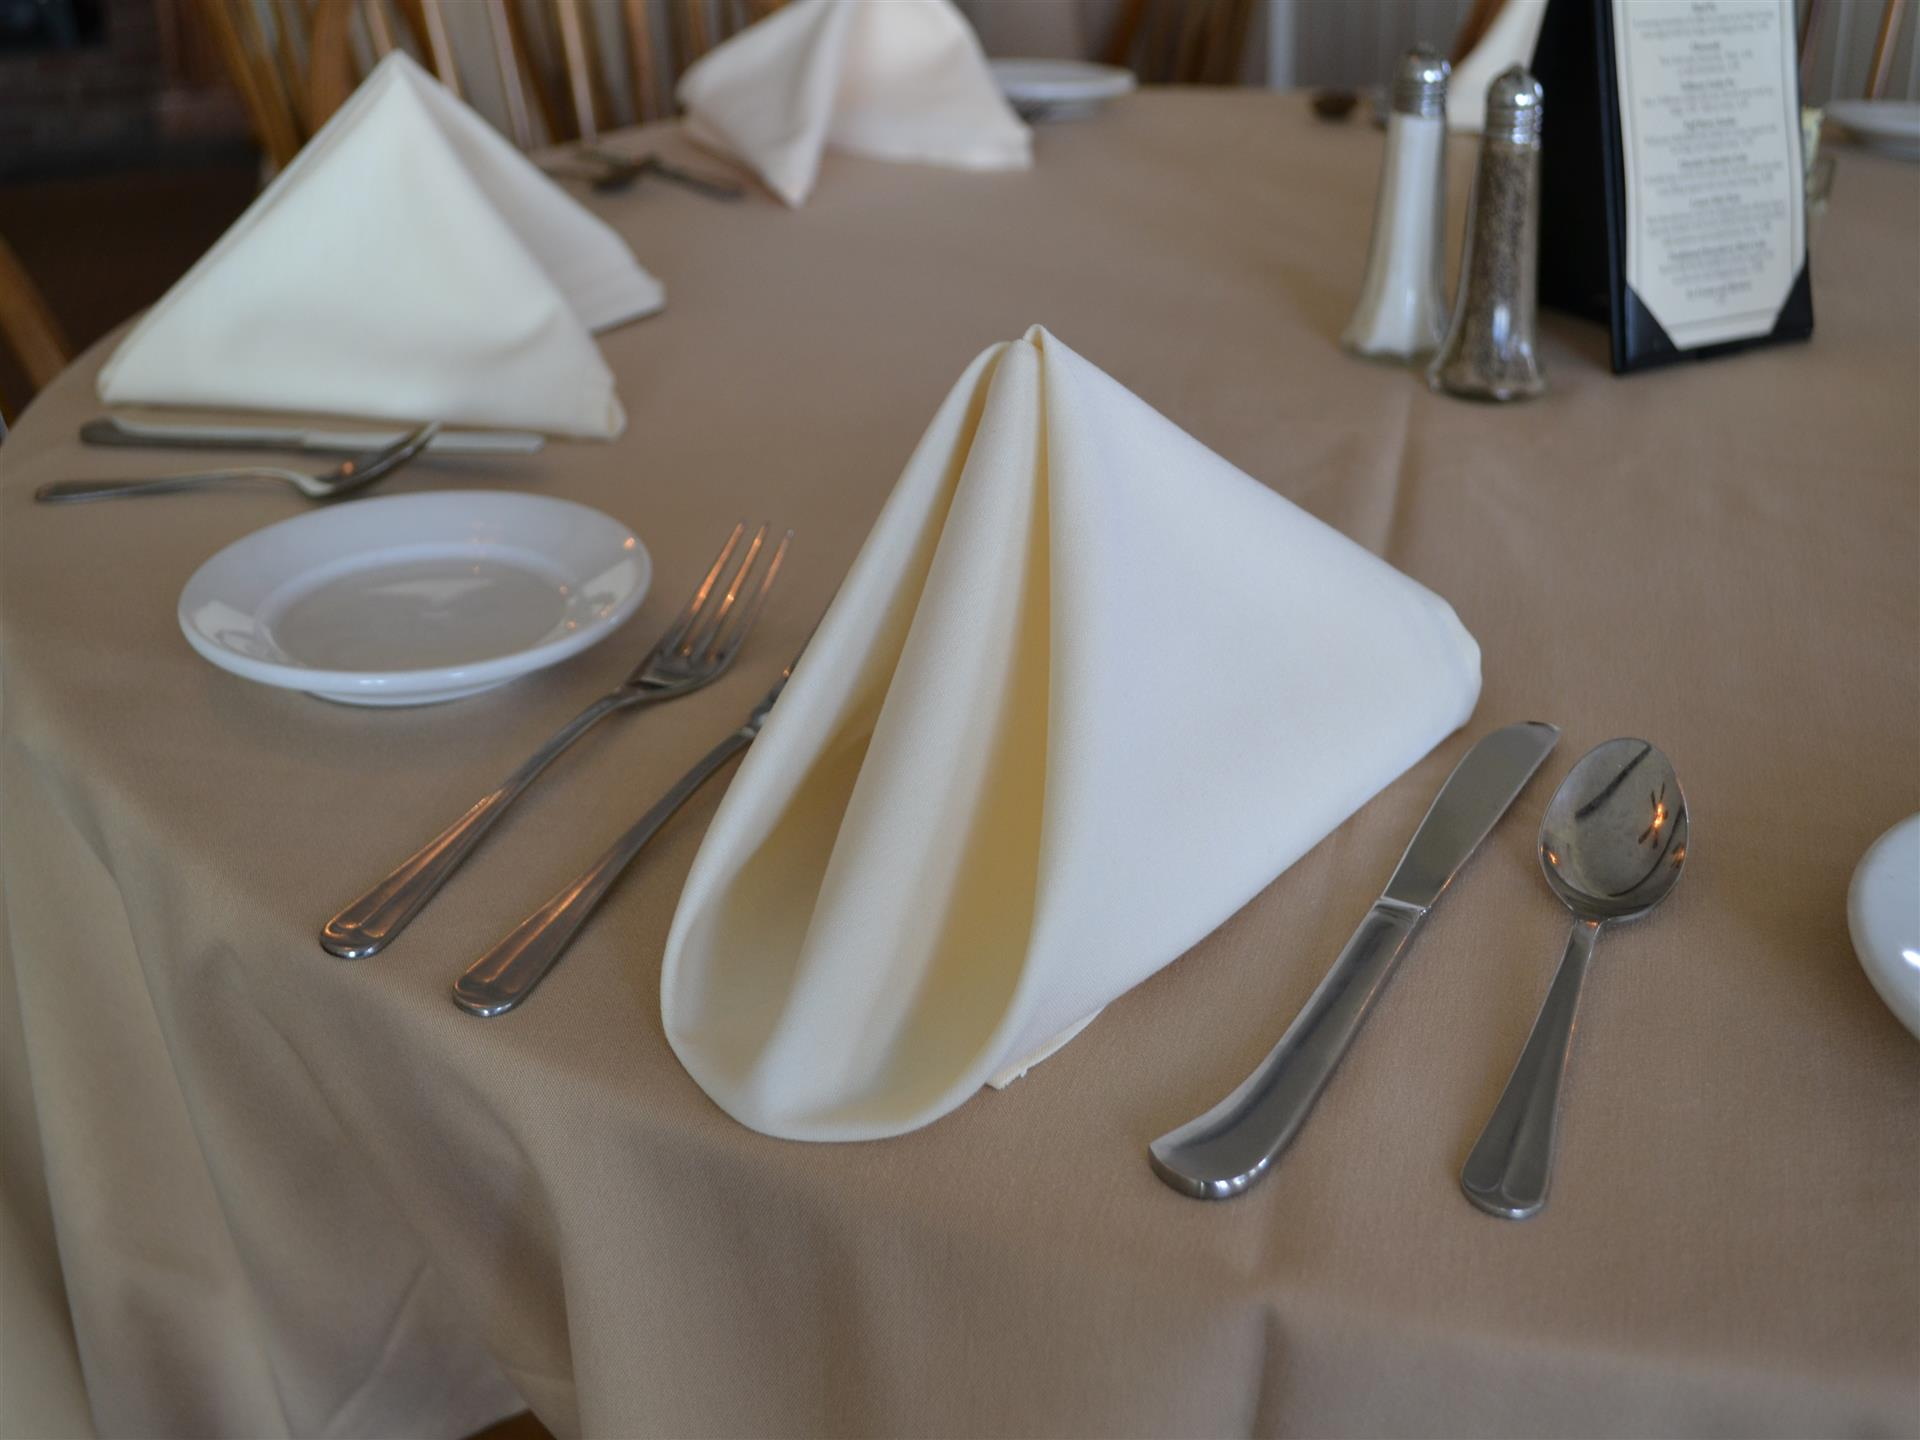 Neatly folded white napkin on a set table